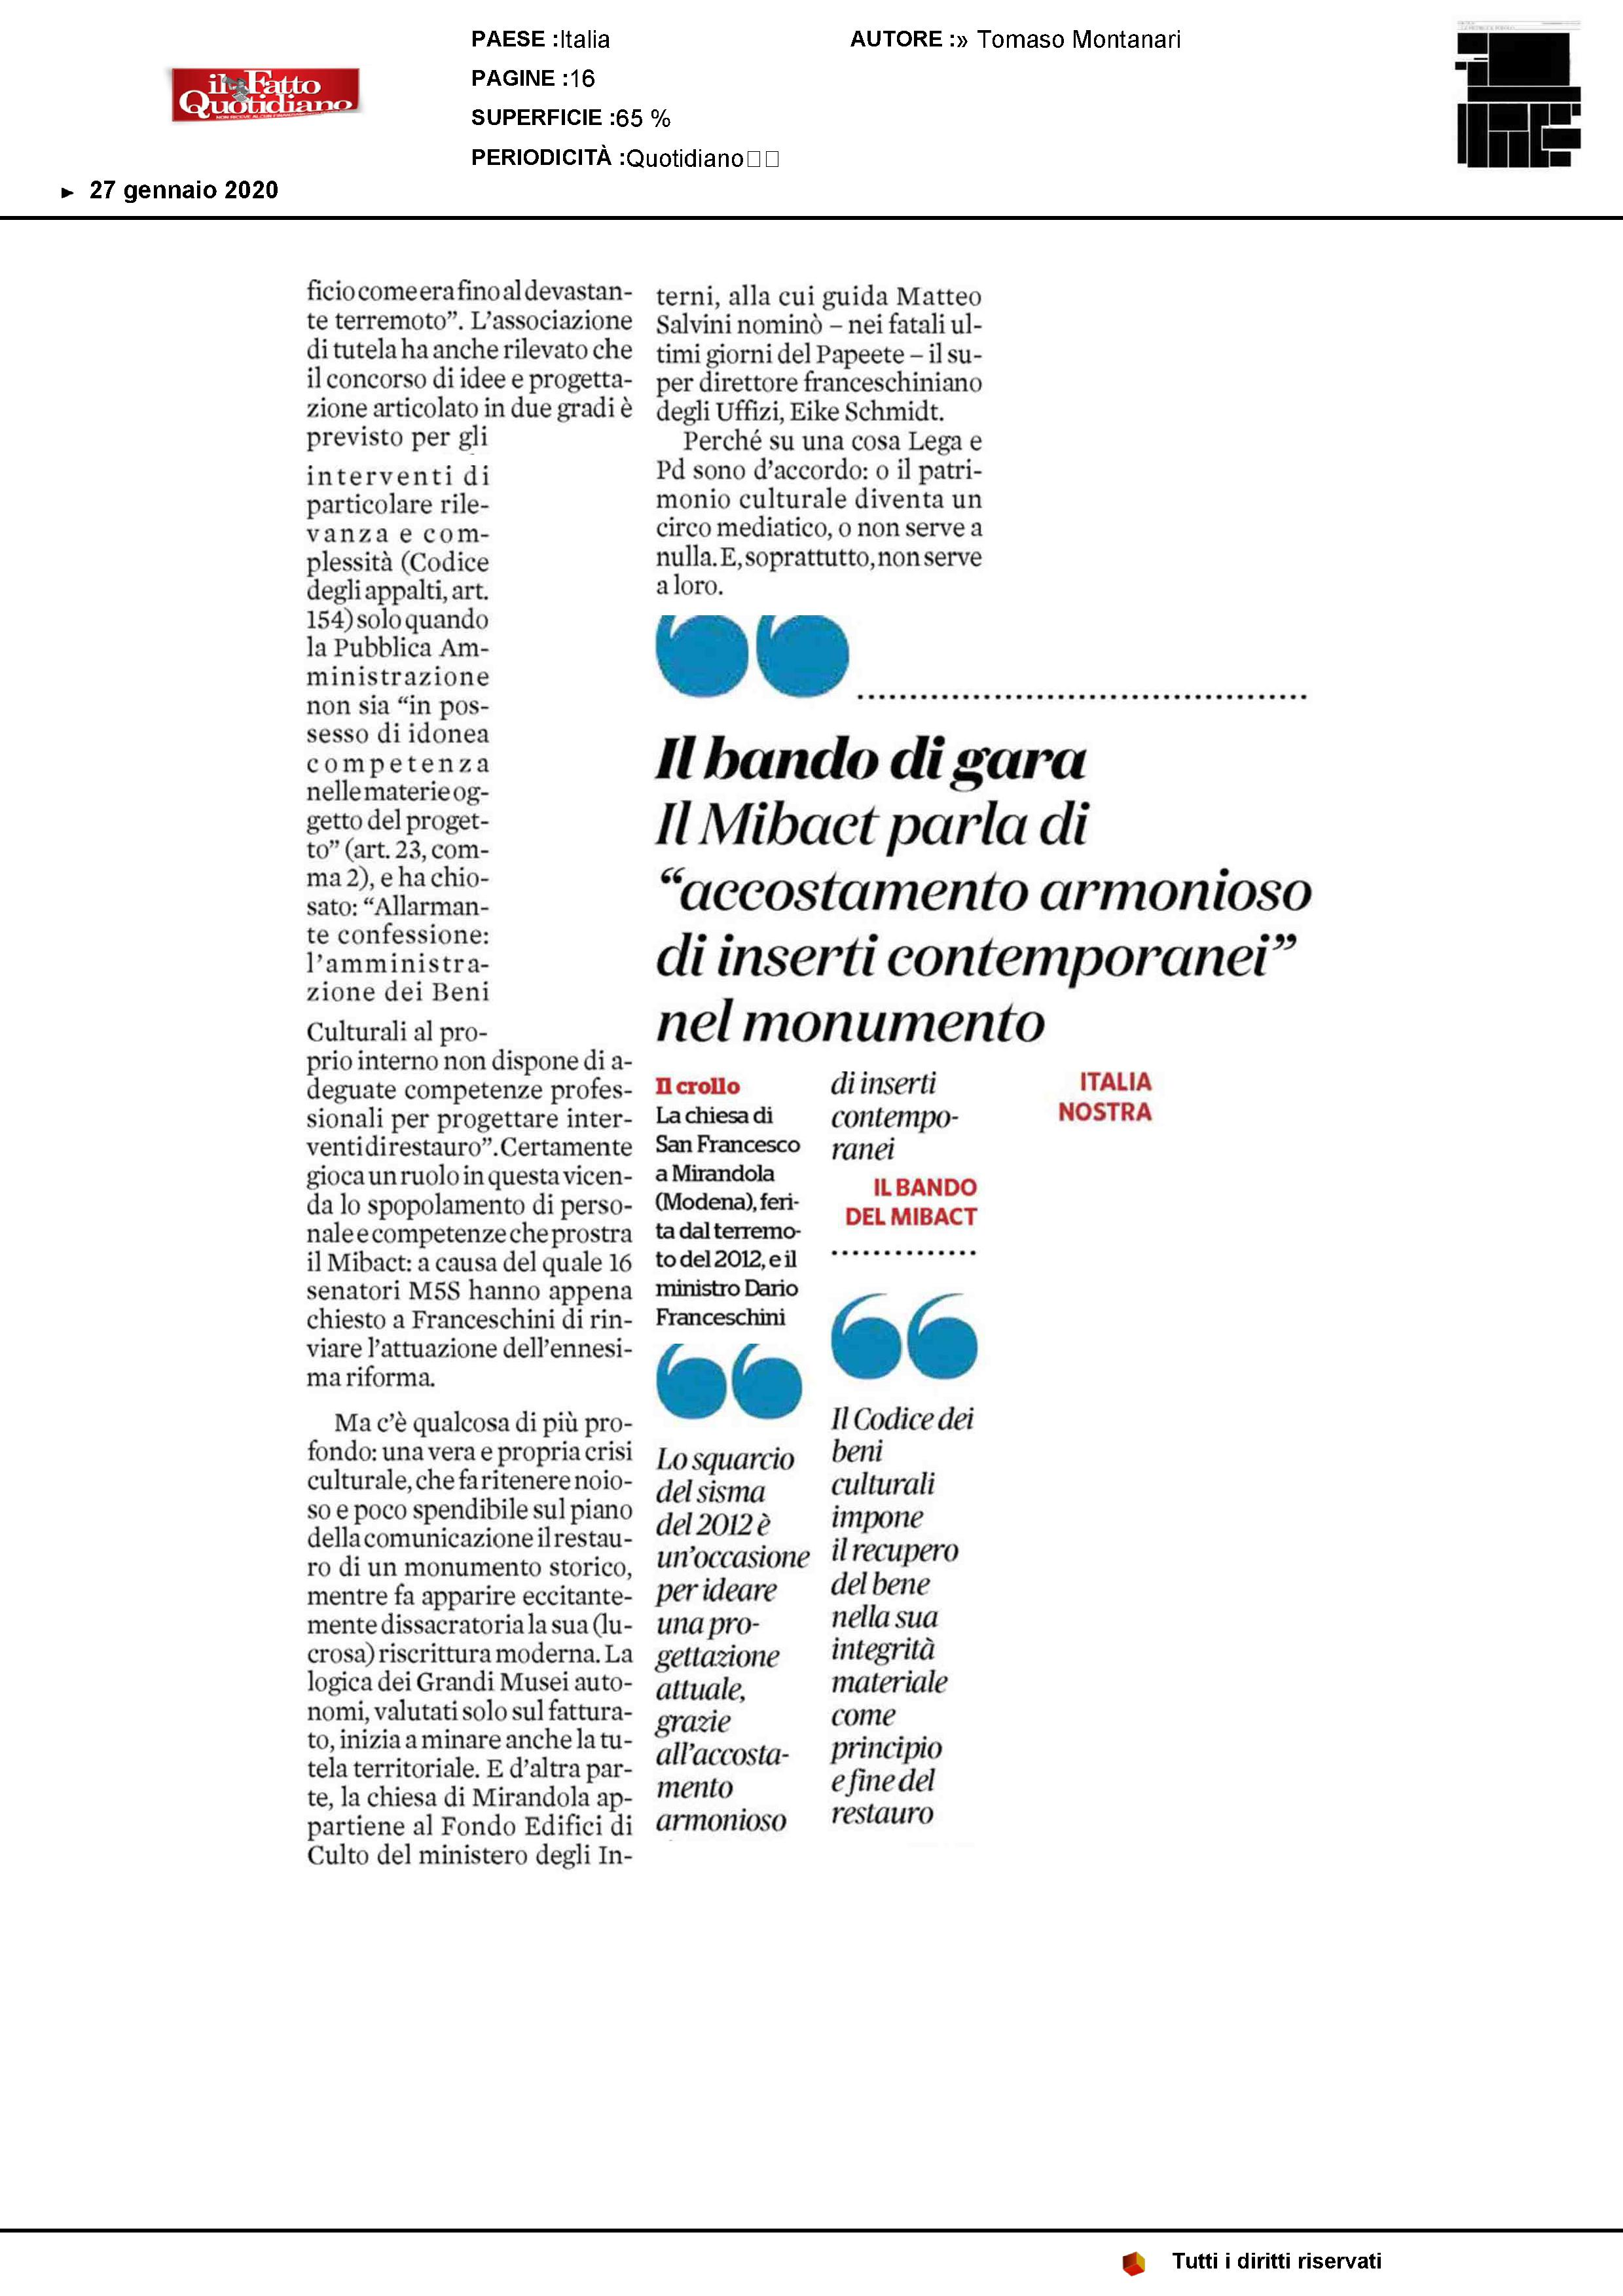 Il_Fatto_Quotidiano_16_20200126230000_2-2